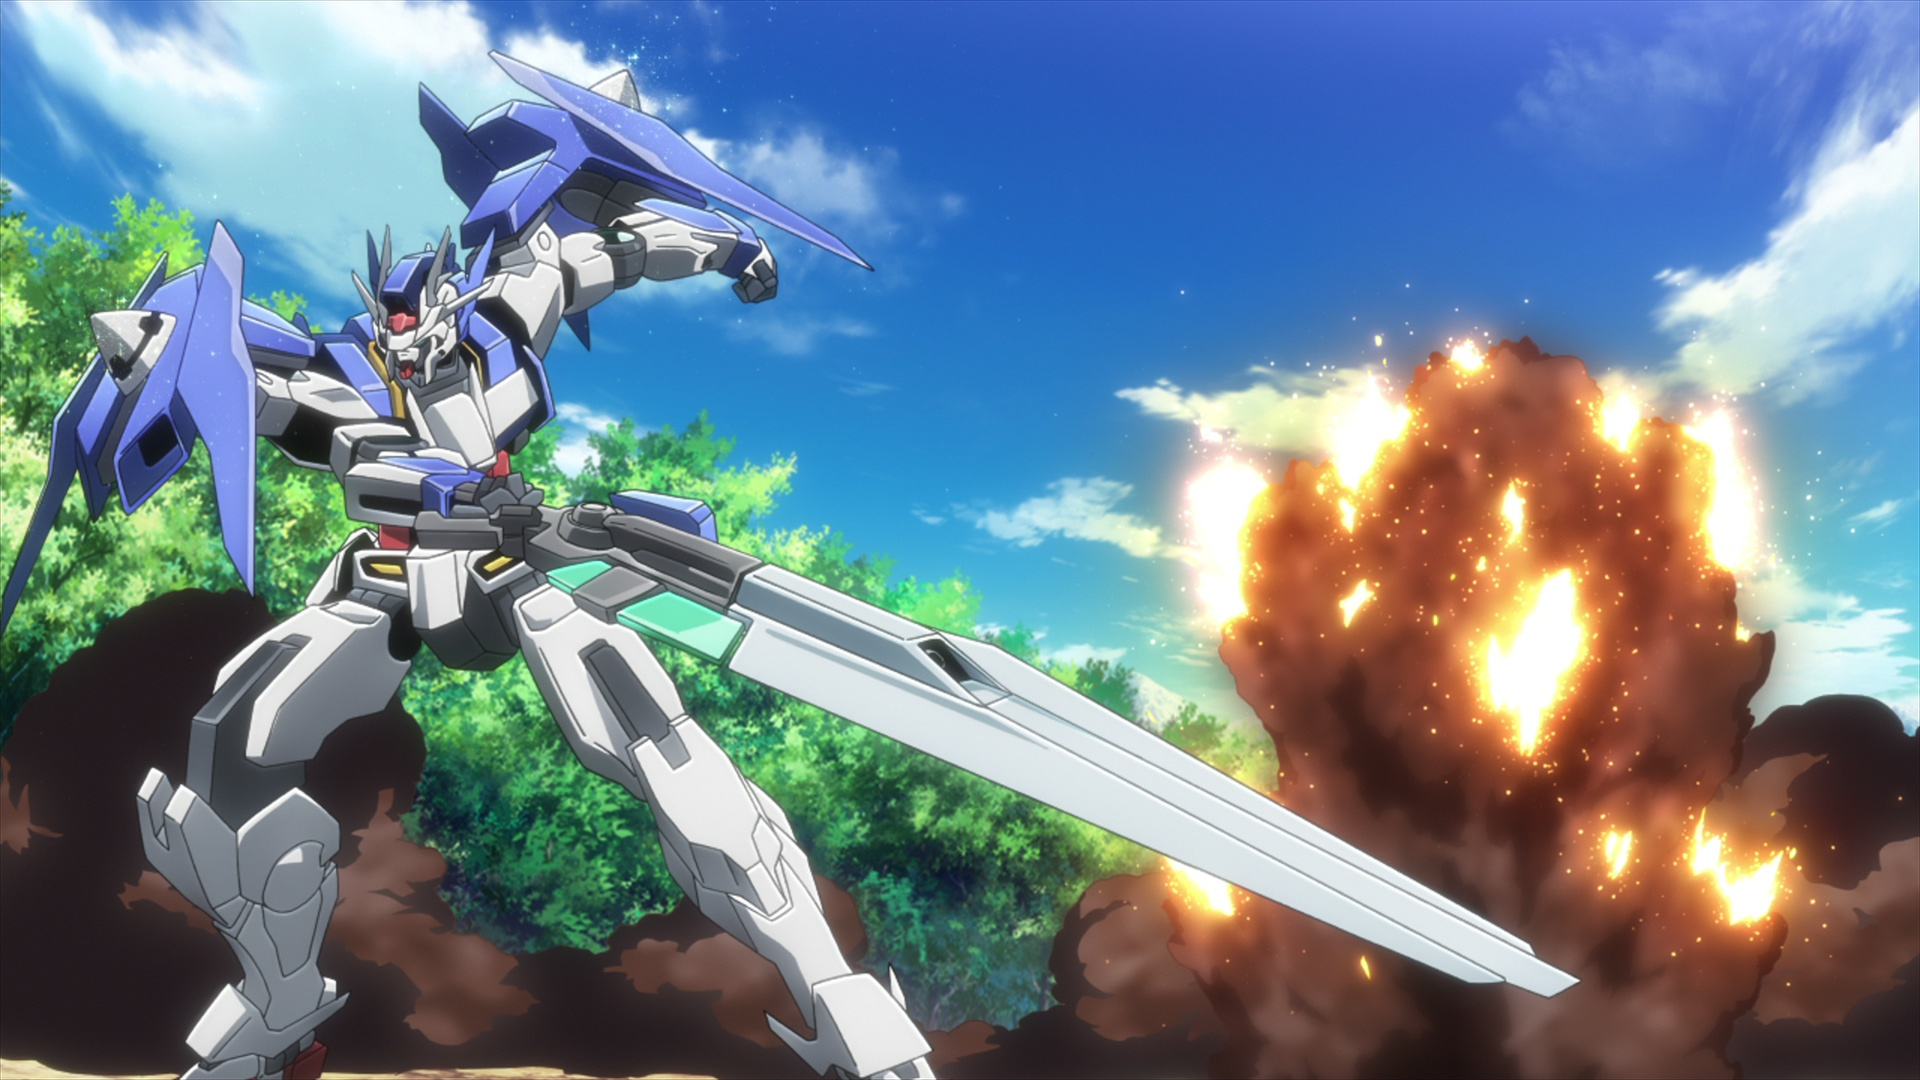 Watch Gundam Build Divers Season 1 Episode 1 Sub & Dub | Anime